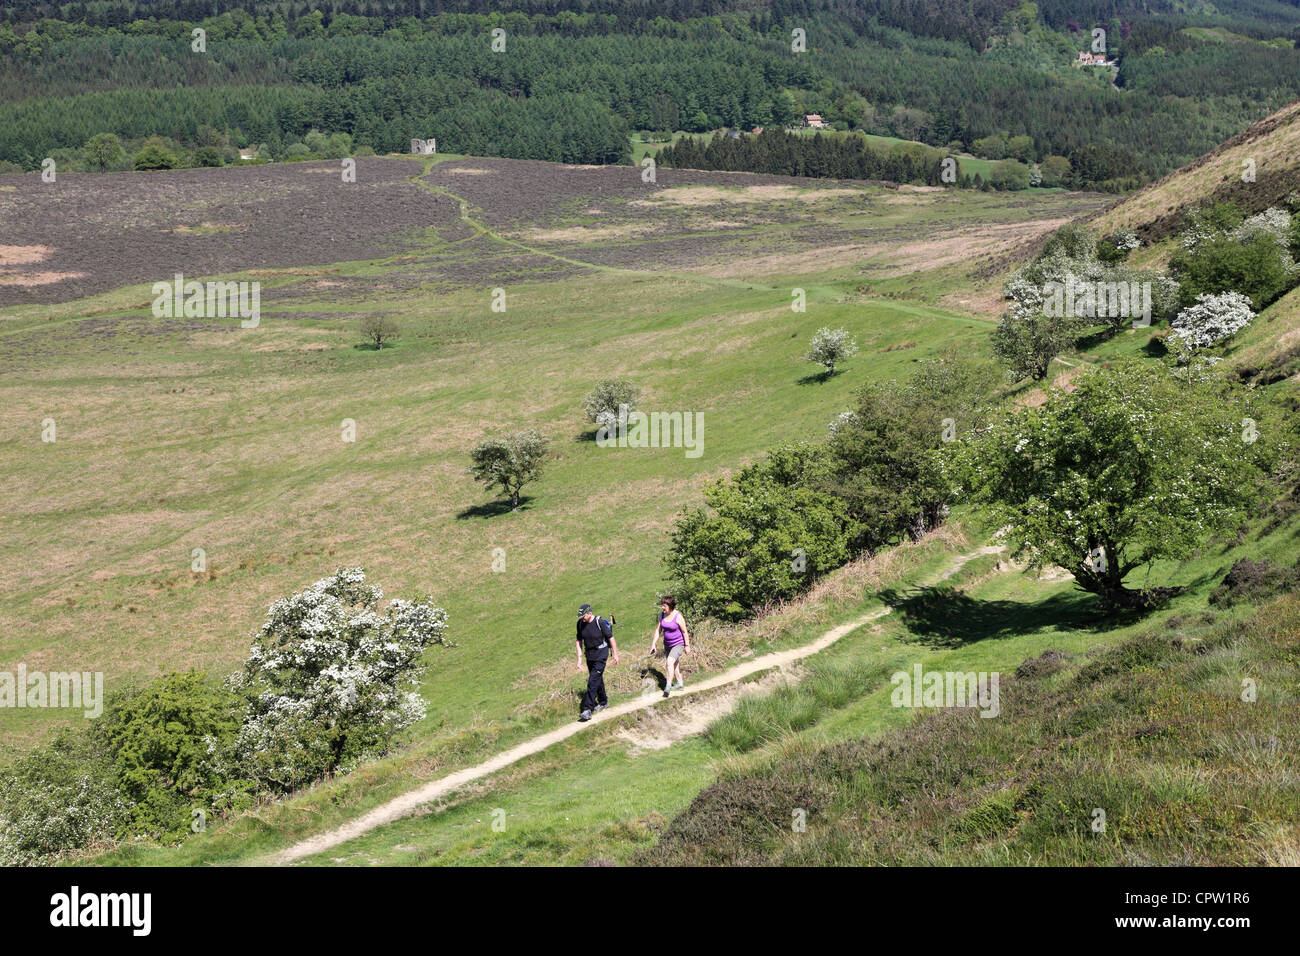 Two walkers on the North Yorkshire Moors near to Skelton Tower, North Yorkshire Moors, England - Stock Image